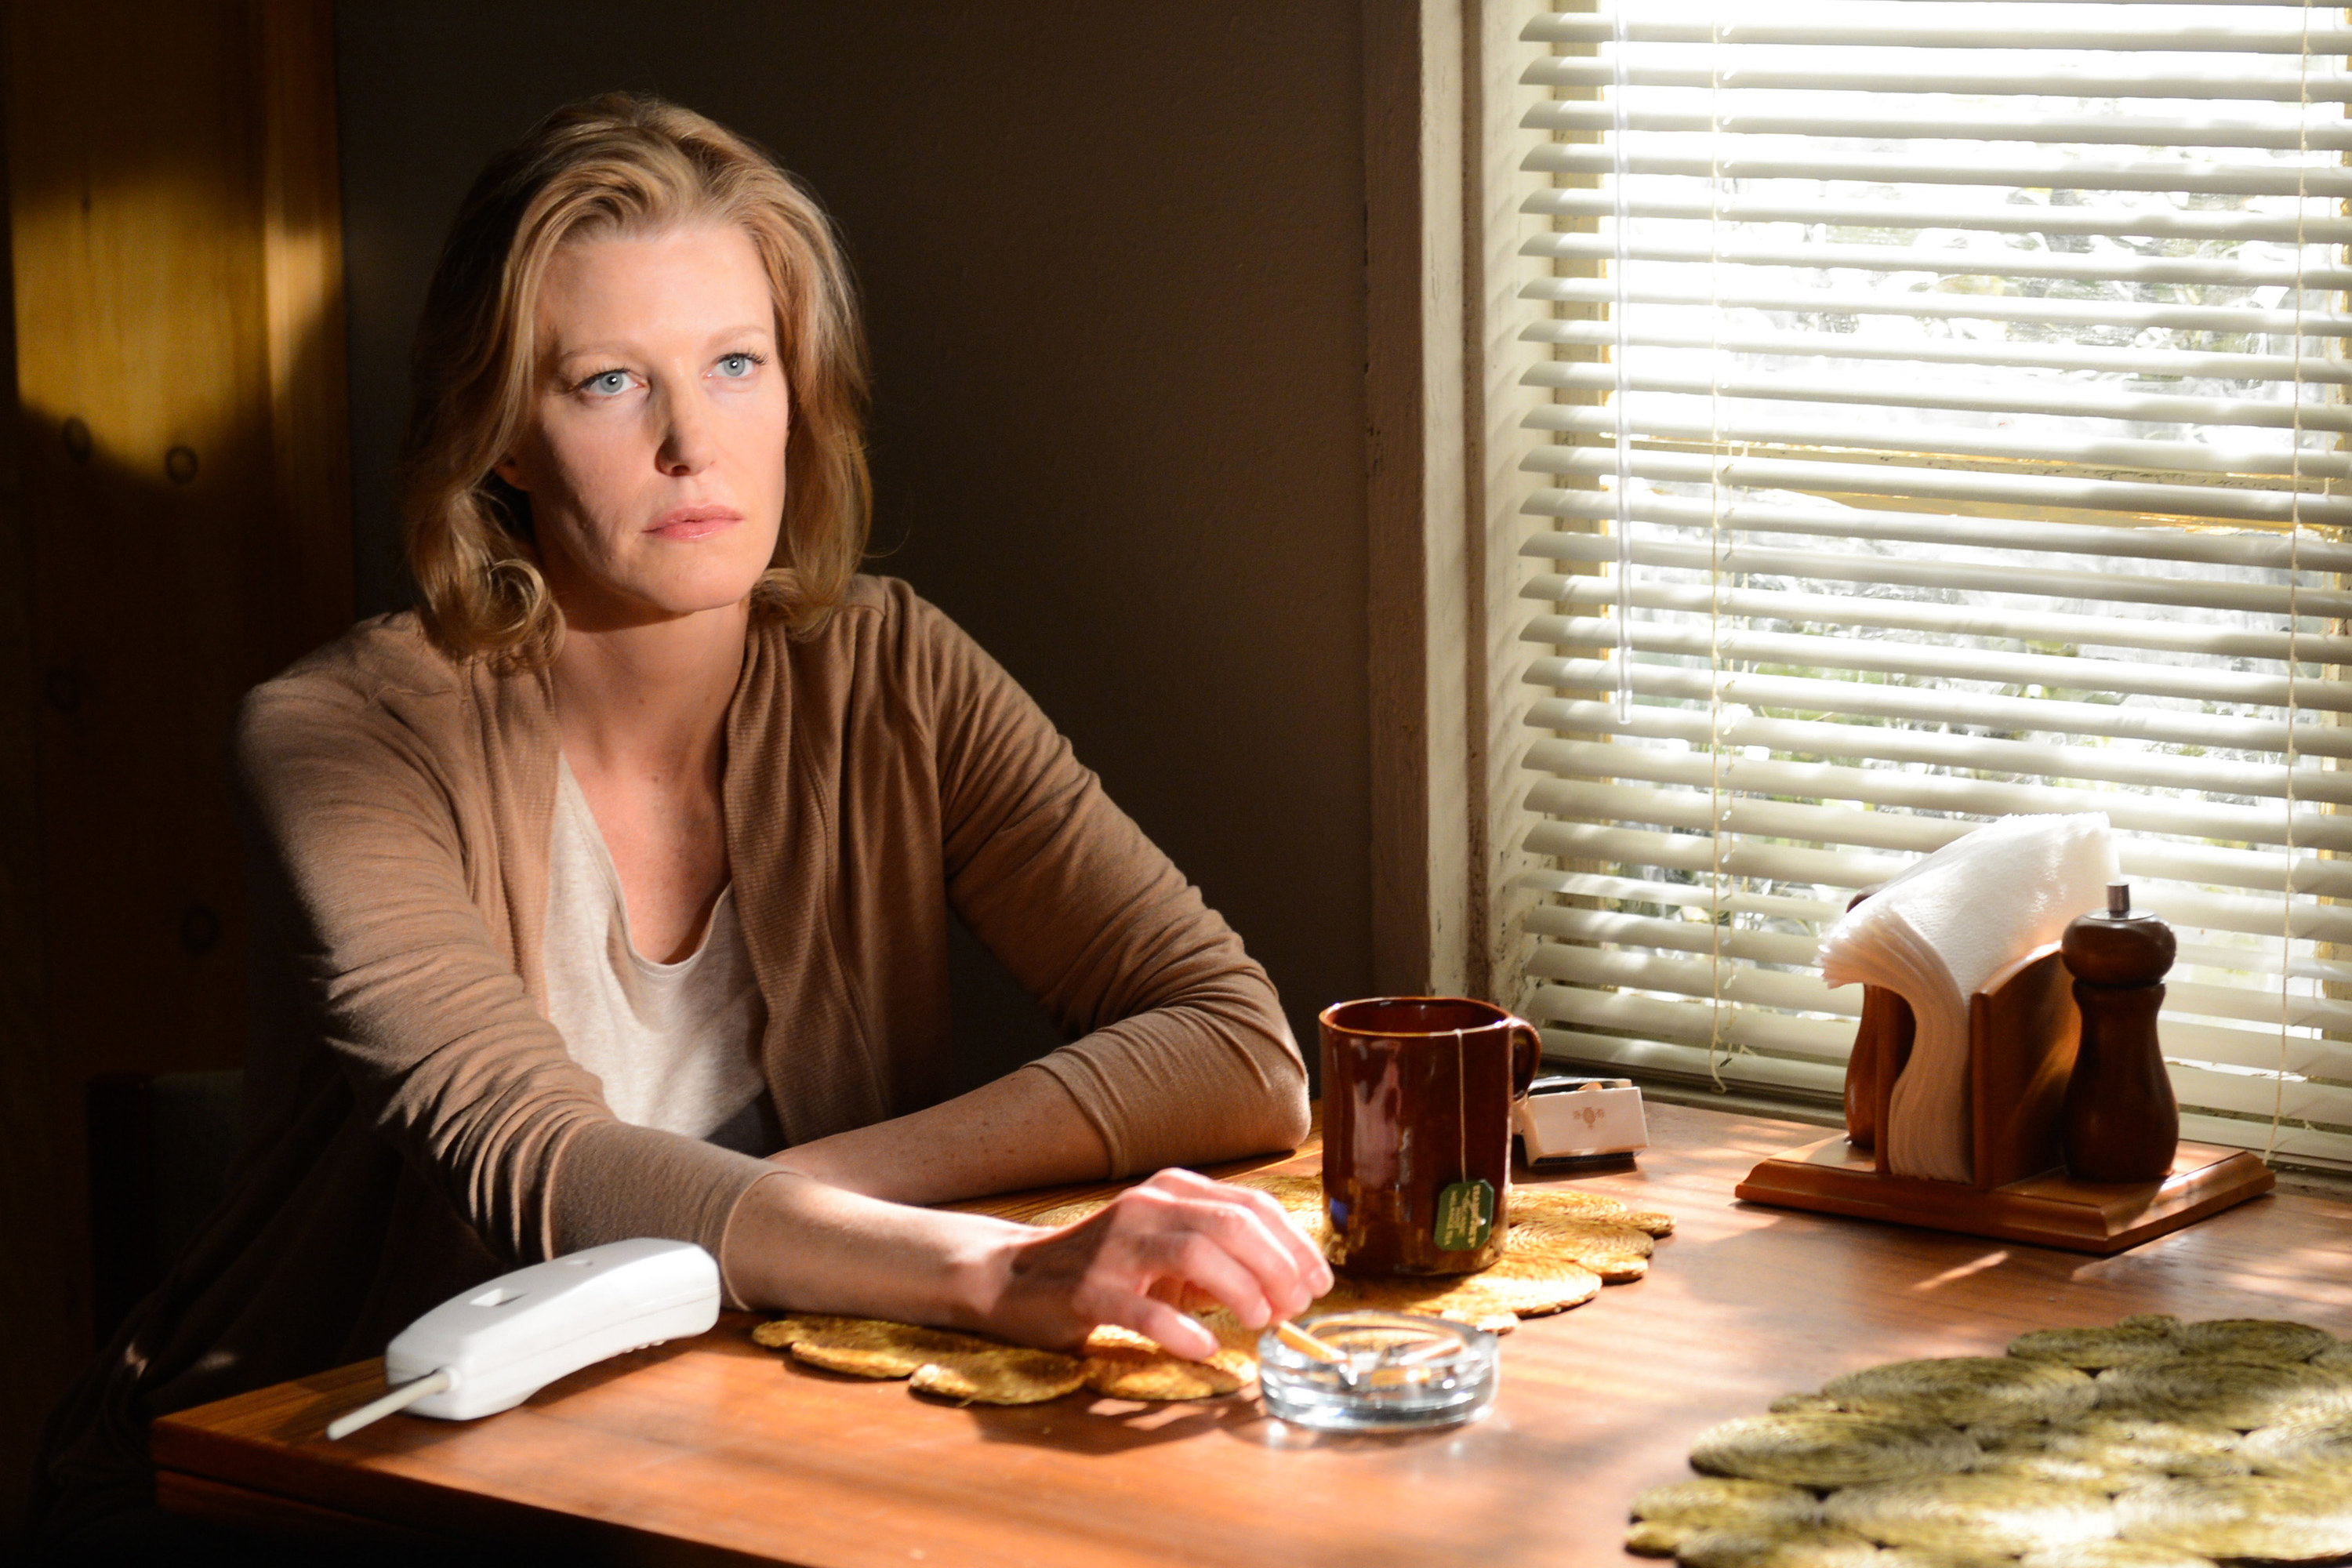 In the season finale, Skyler smokes at her kitchen table